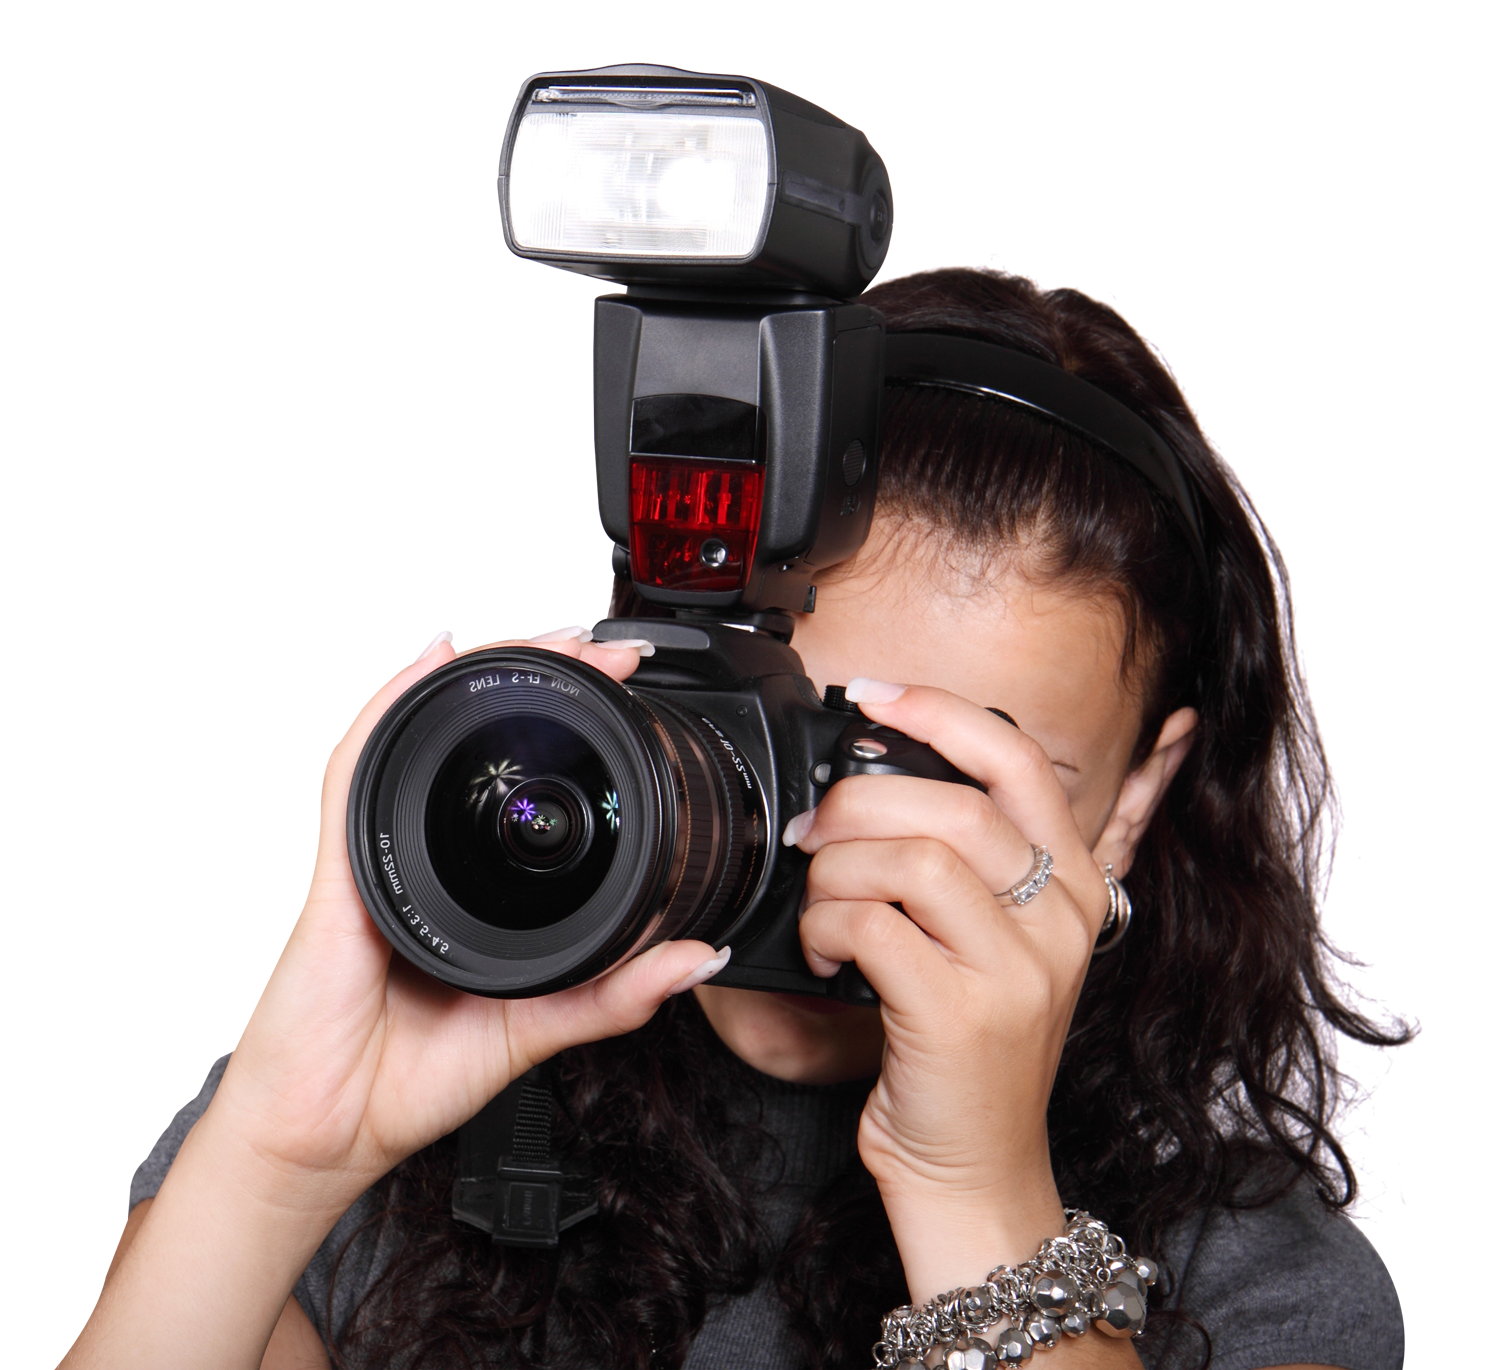 Woman Taking Photo With Digital Camera Png Image 28146